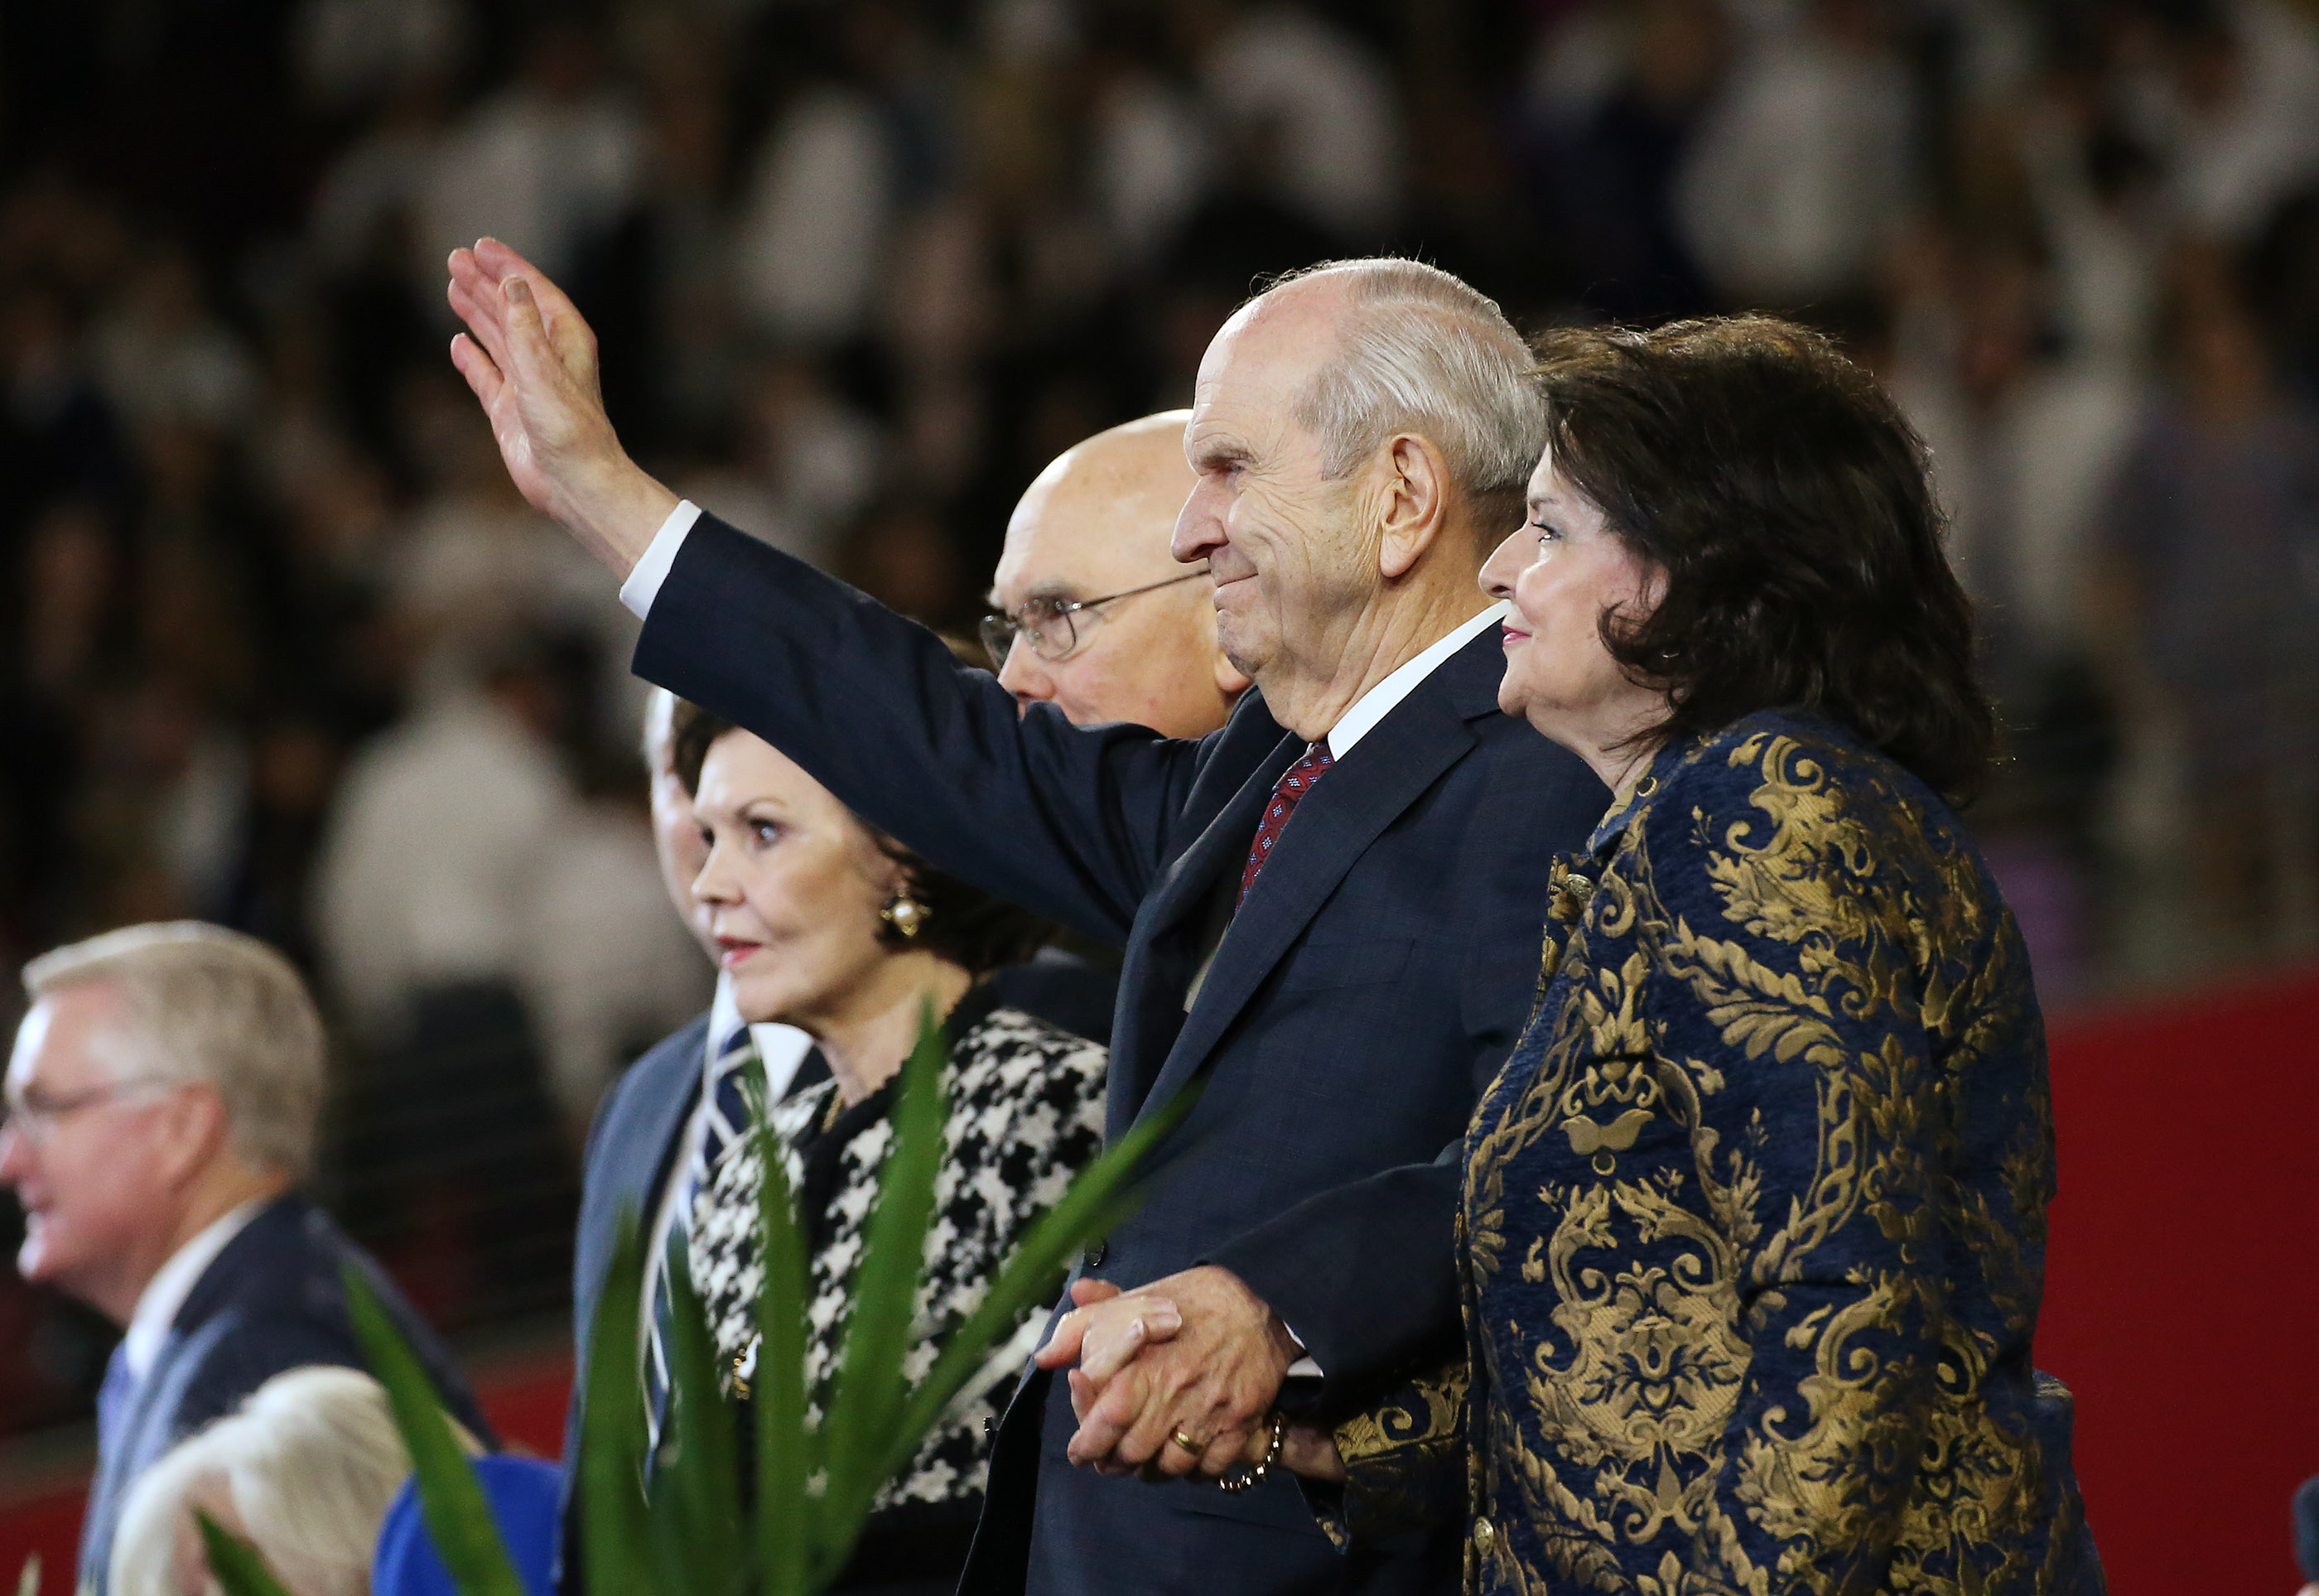 President Russell M. Nelson of The Church of Jesus Christ of Latter-day Saints waves to attendees with his wife, Sister Wendy Nelson, after a devotional at the State Farm Stadium in Phoenix on Sunday, Feb. 10, 2019.